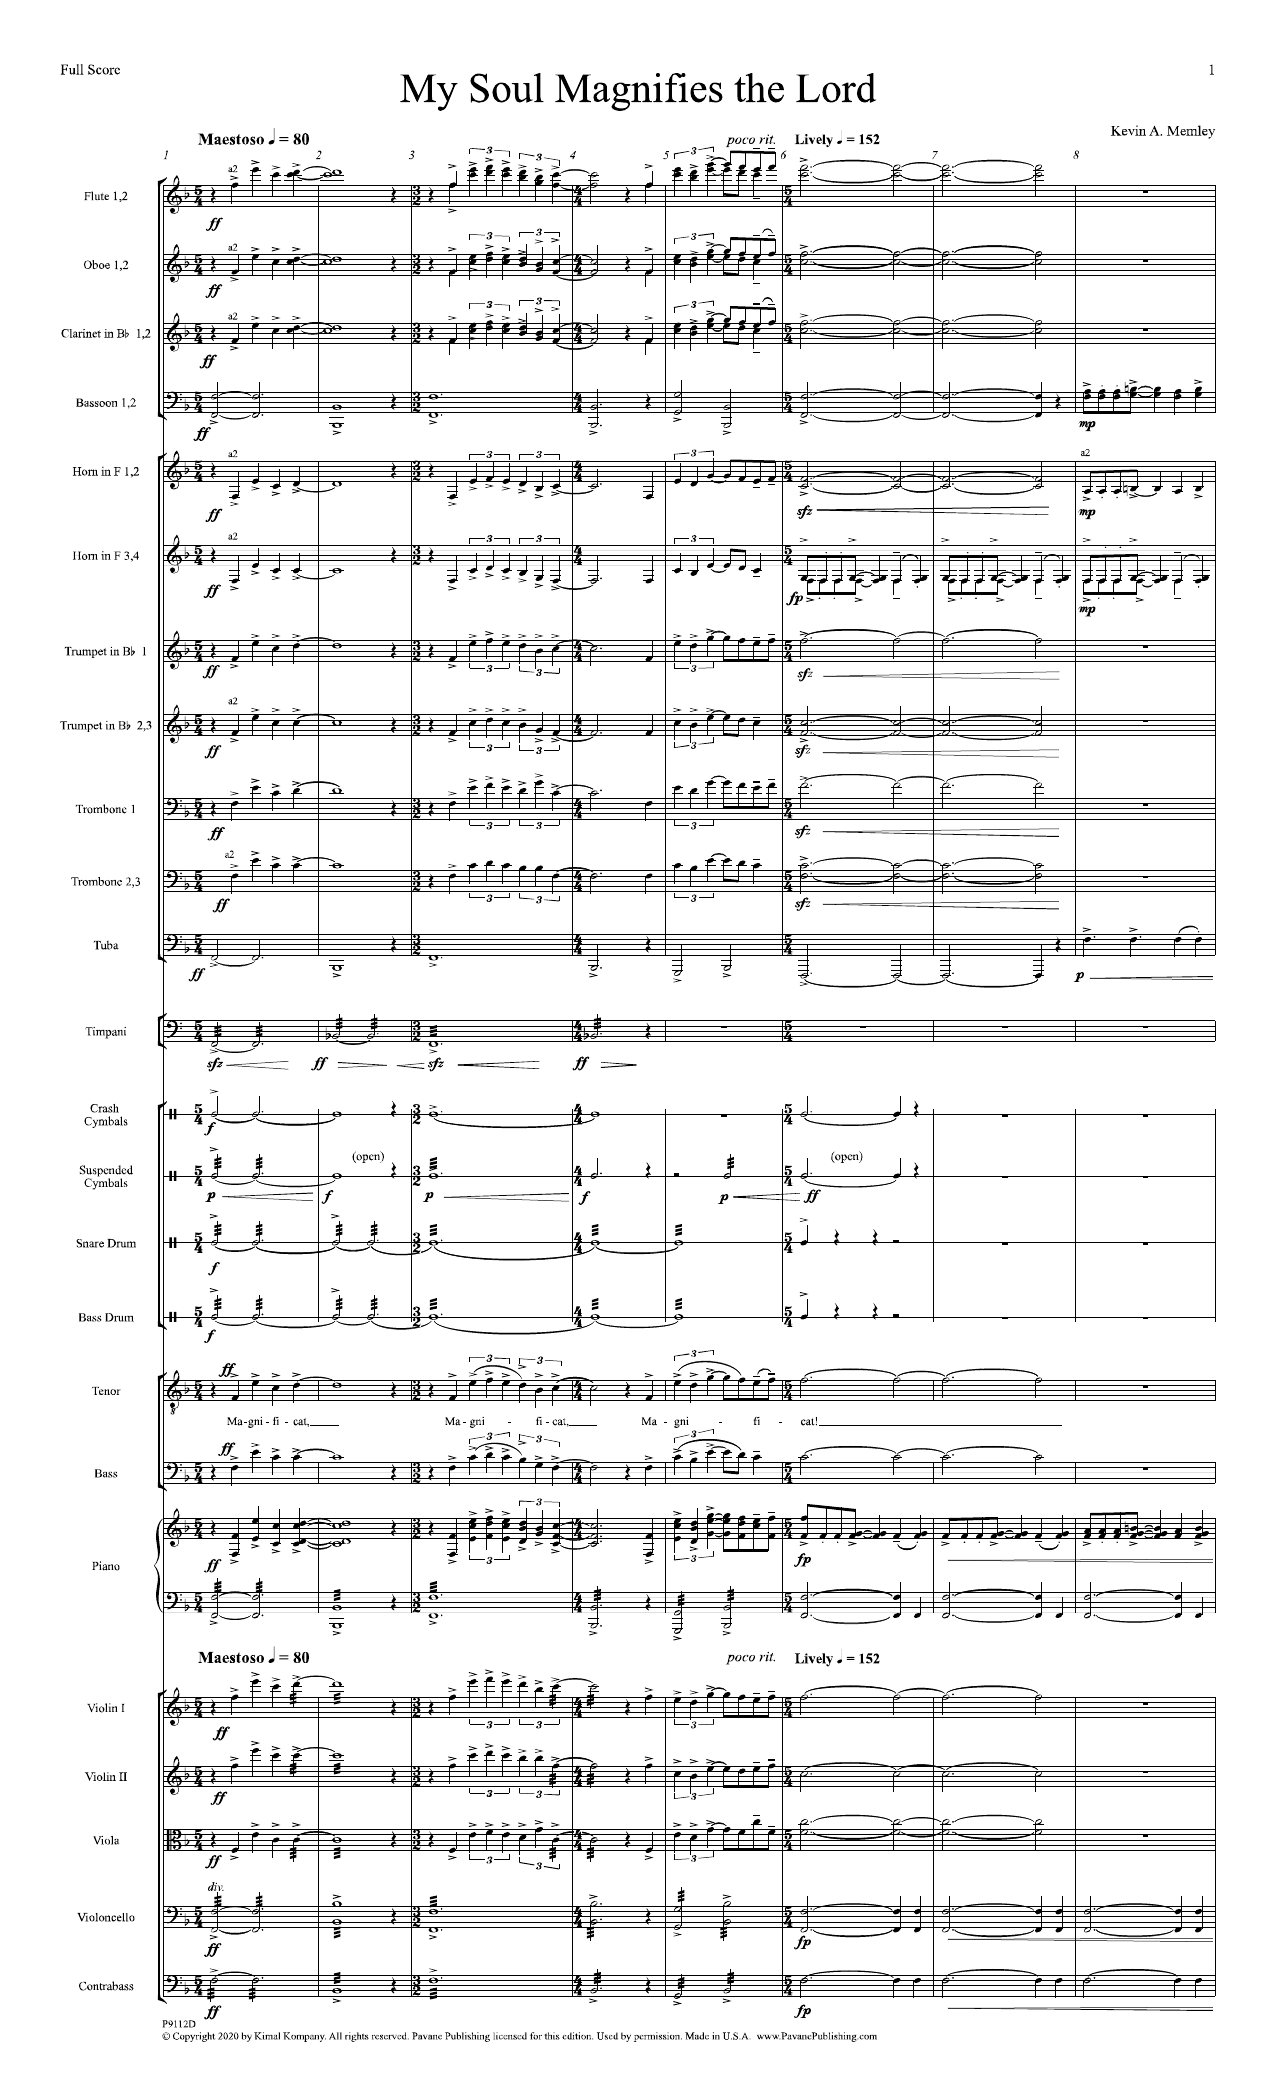 My Soul Magnifies the Lord (Full Orchestra) - Full Score Sheet Music